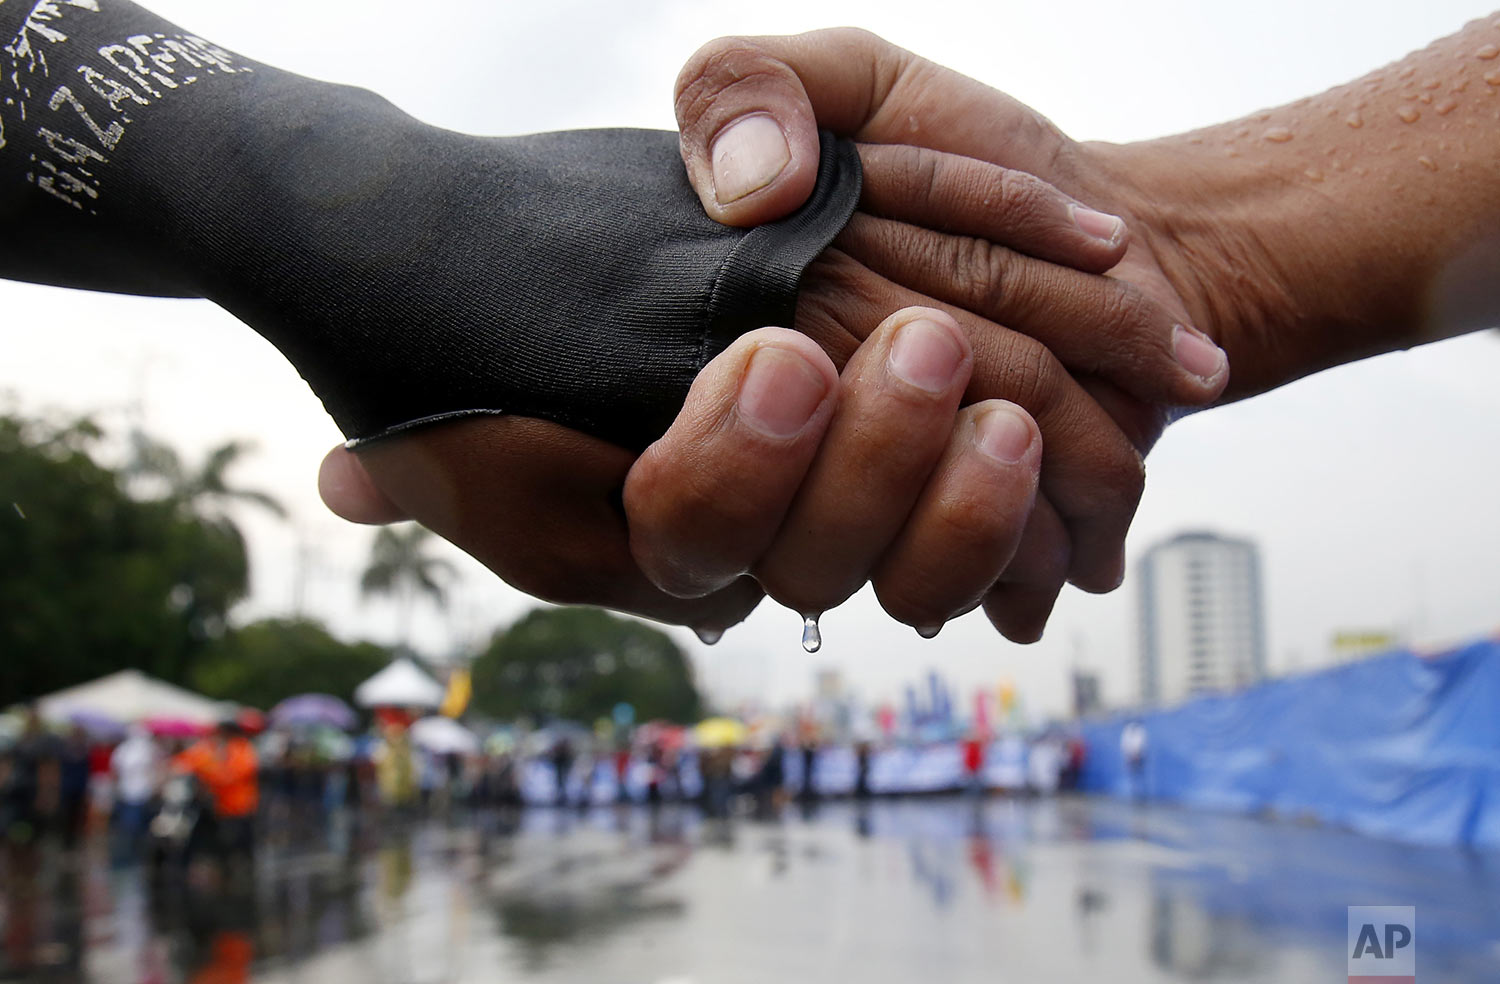 Protesters link hands as they lead a march under the rain towards the Philippine Congress to protest the 4th State of the Nation (SONA) address by President Rodrigo Duterte in suburban Quezon city, northeast of Manila, Philippines, July 22, 2019. (AP Photo/Bullit Marquez)